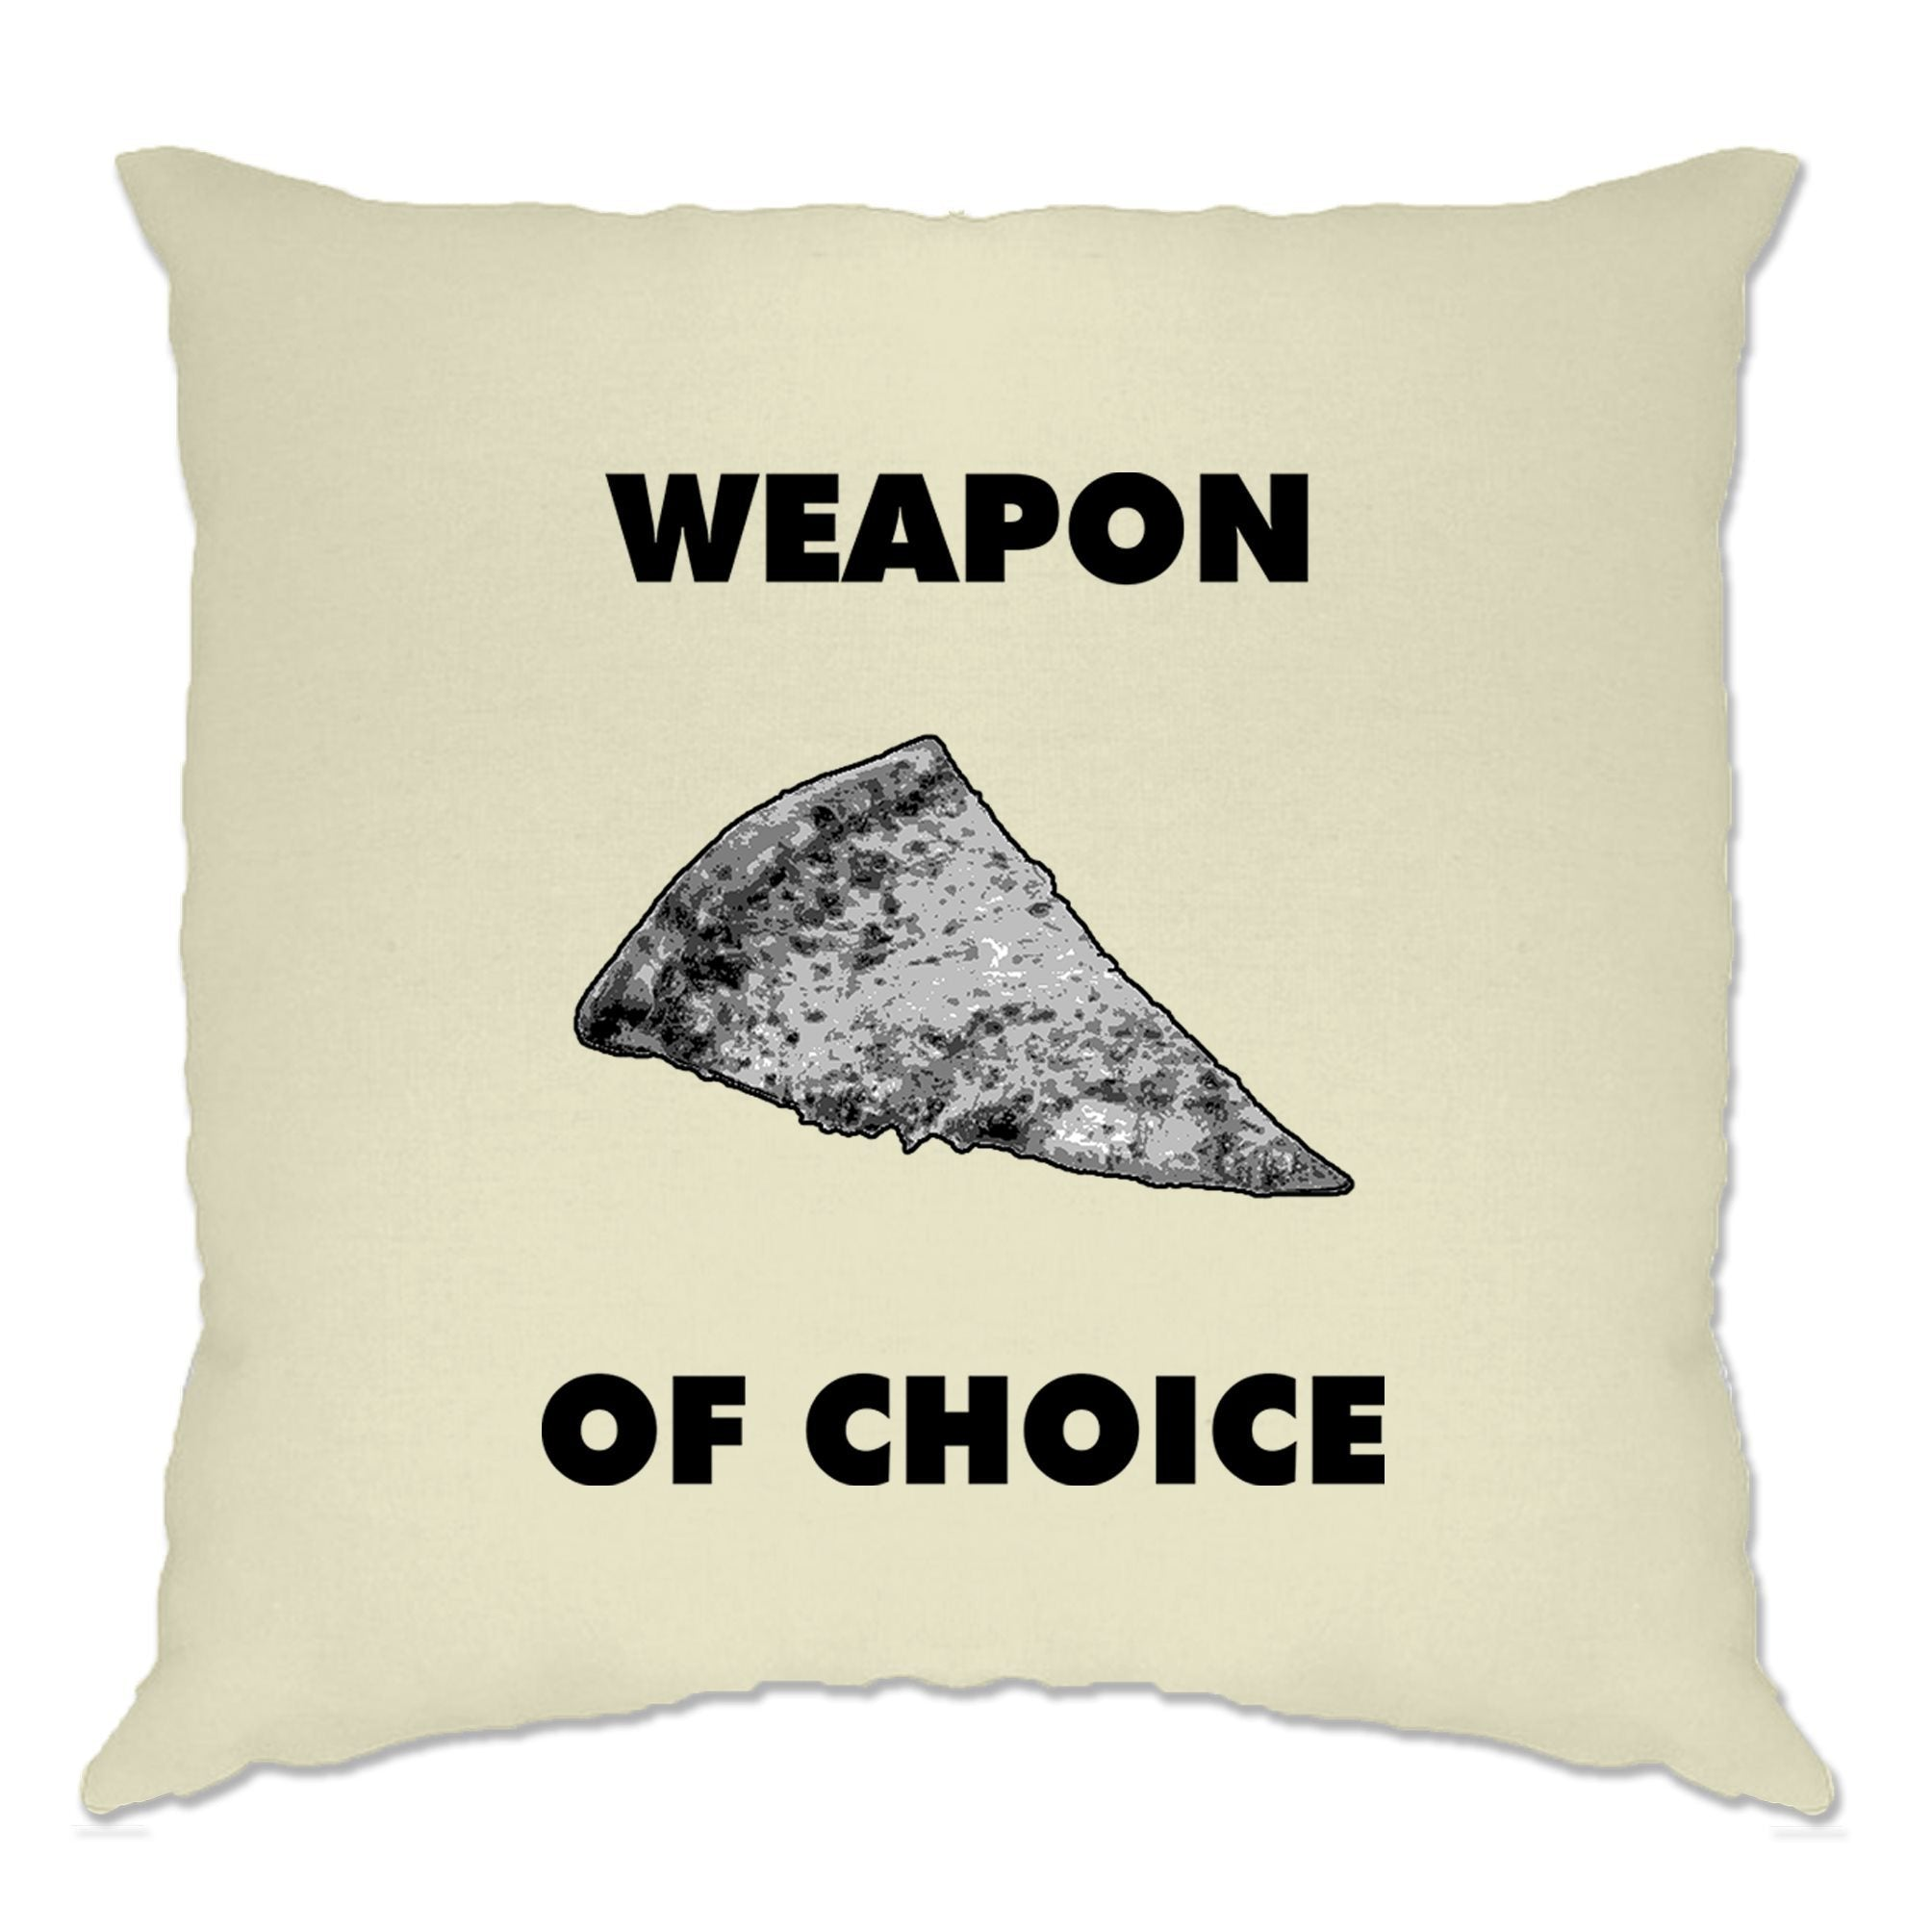 Novelty Food Cushion Cover Weapon of Choice Pizza Slice